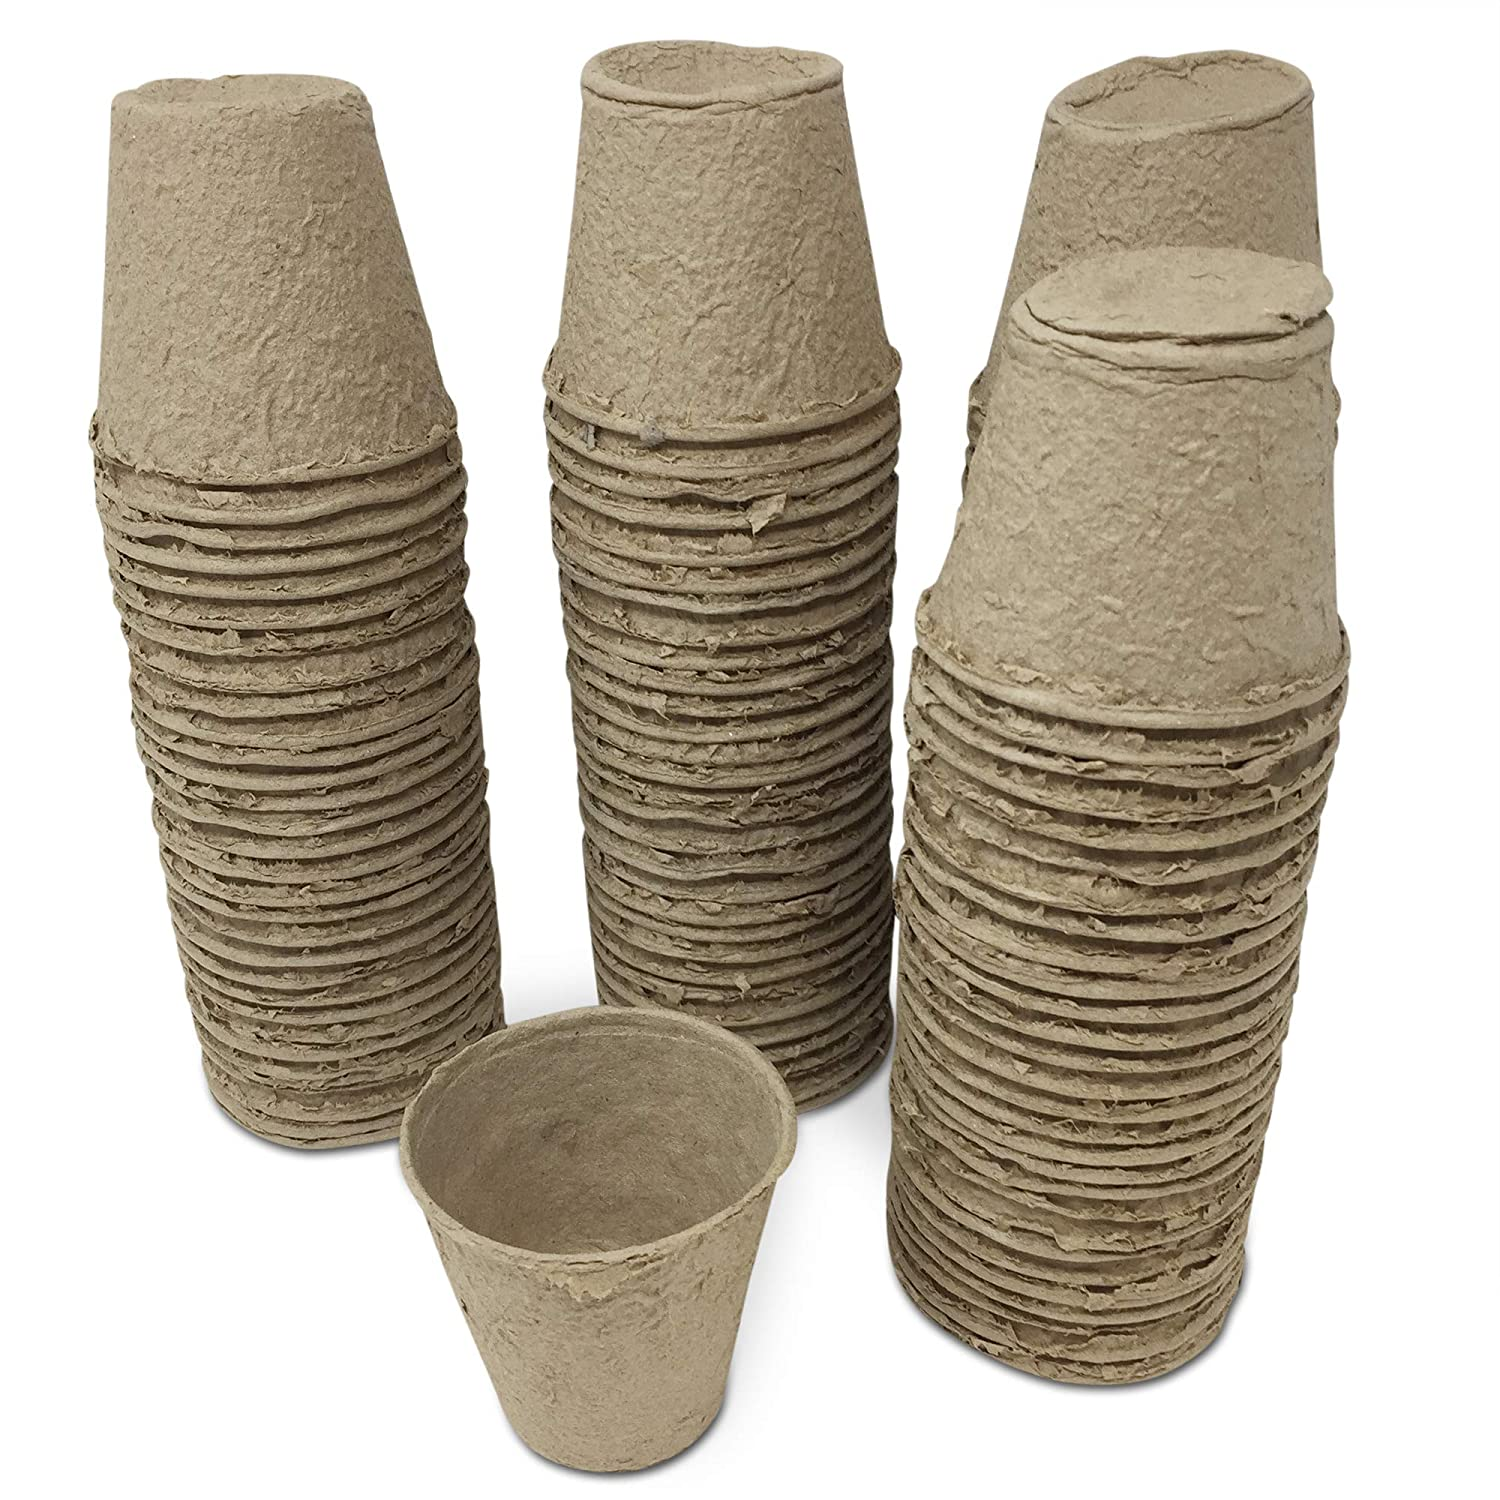 Grown Your Own Set of 120 Round 8cm Fibre Plant Seedling Pots Biodegradable